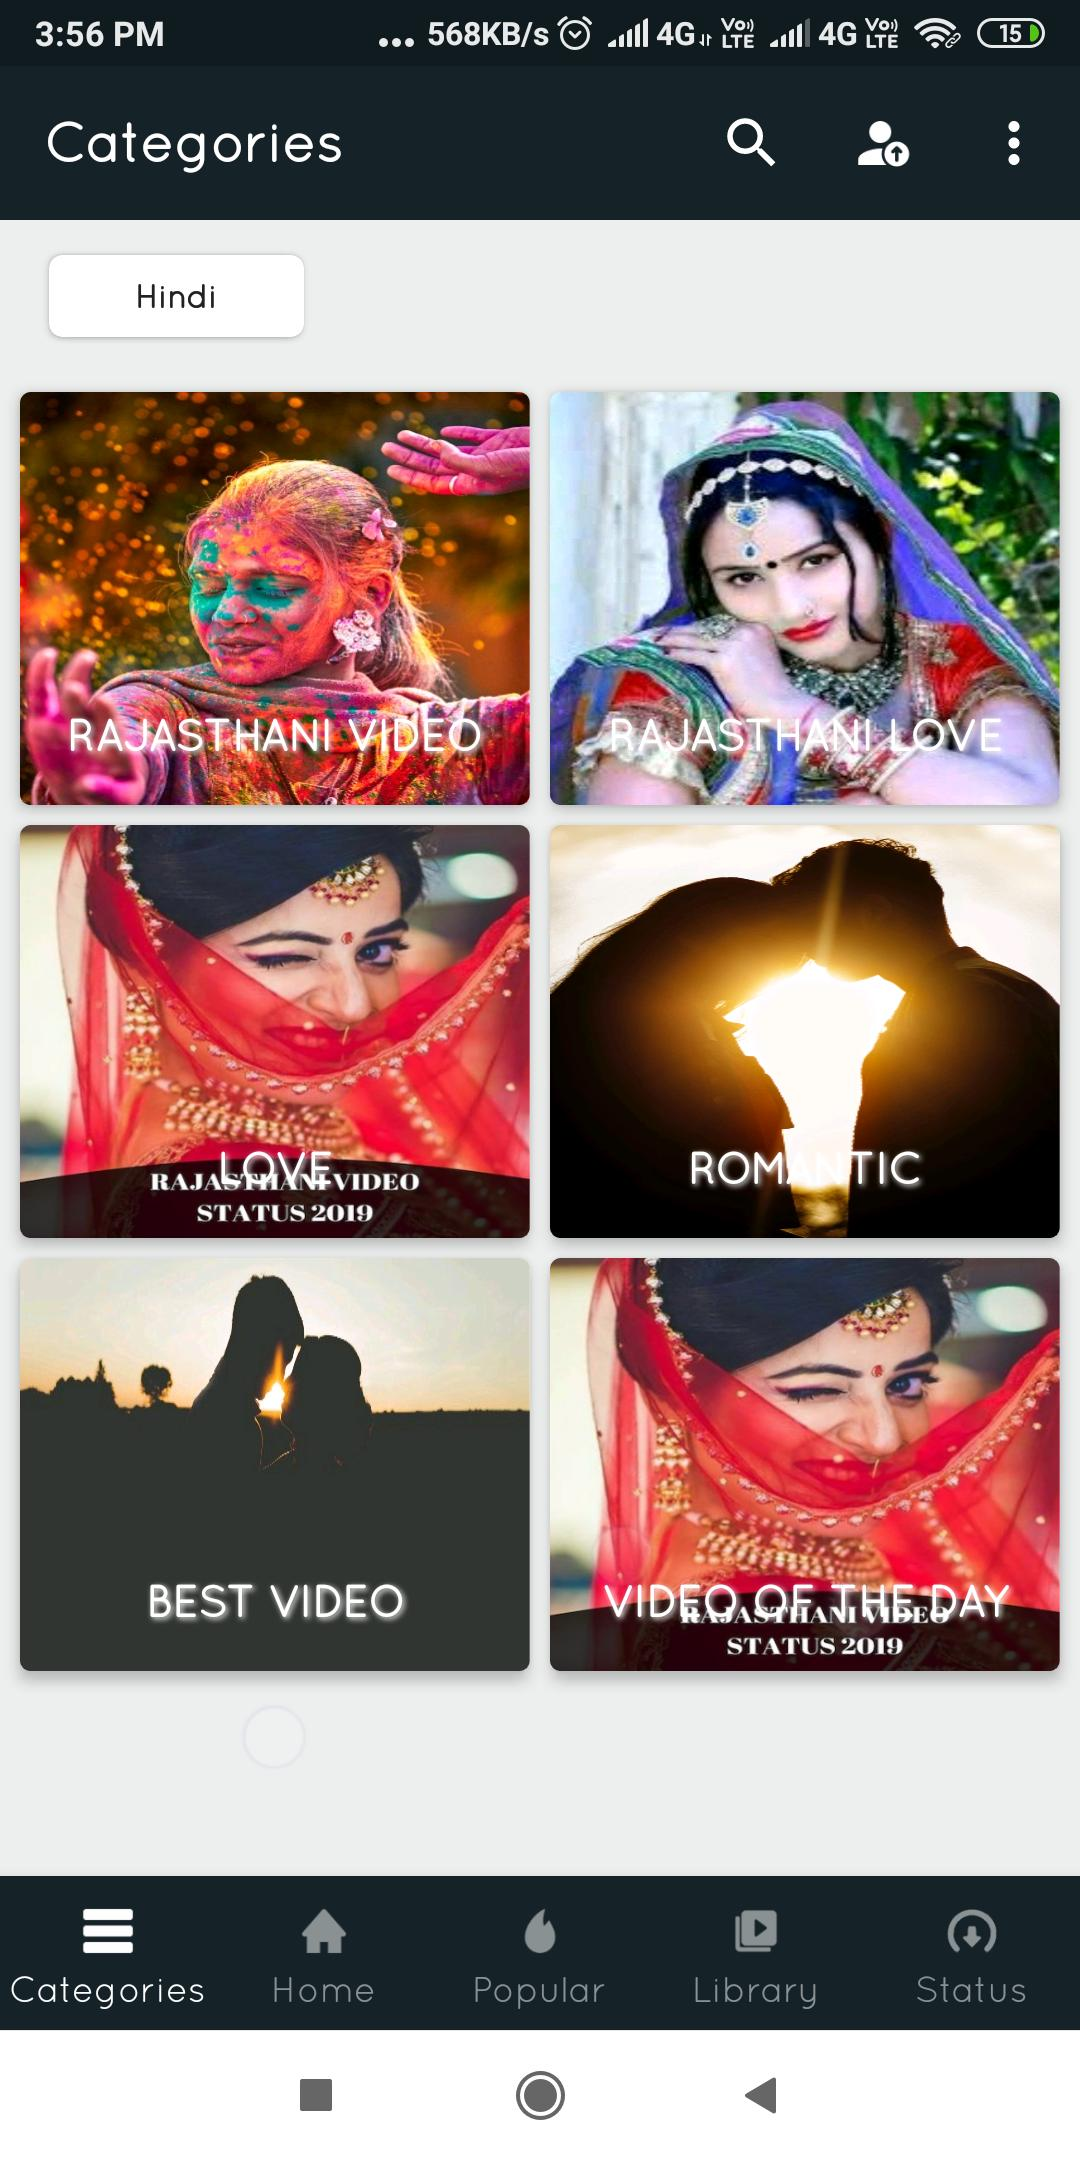 Rajasthani Video Status 2019 for Android - APK Download